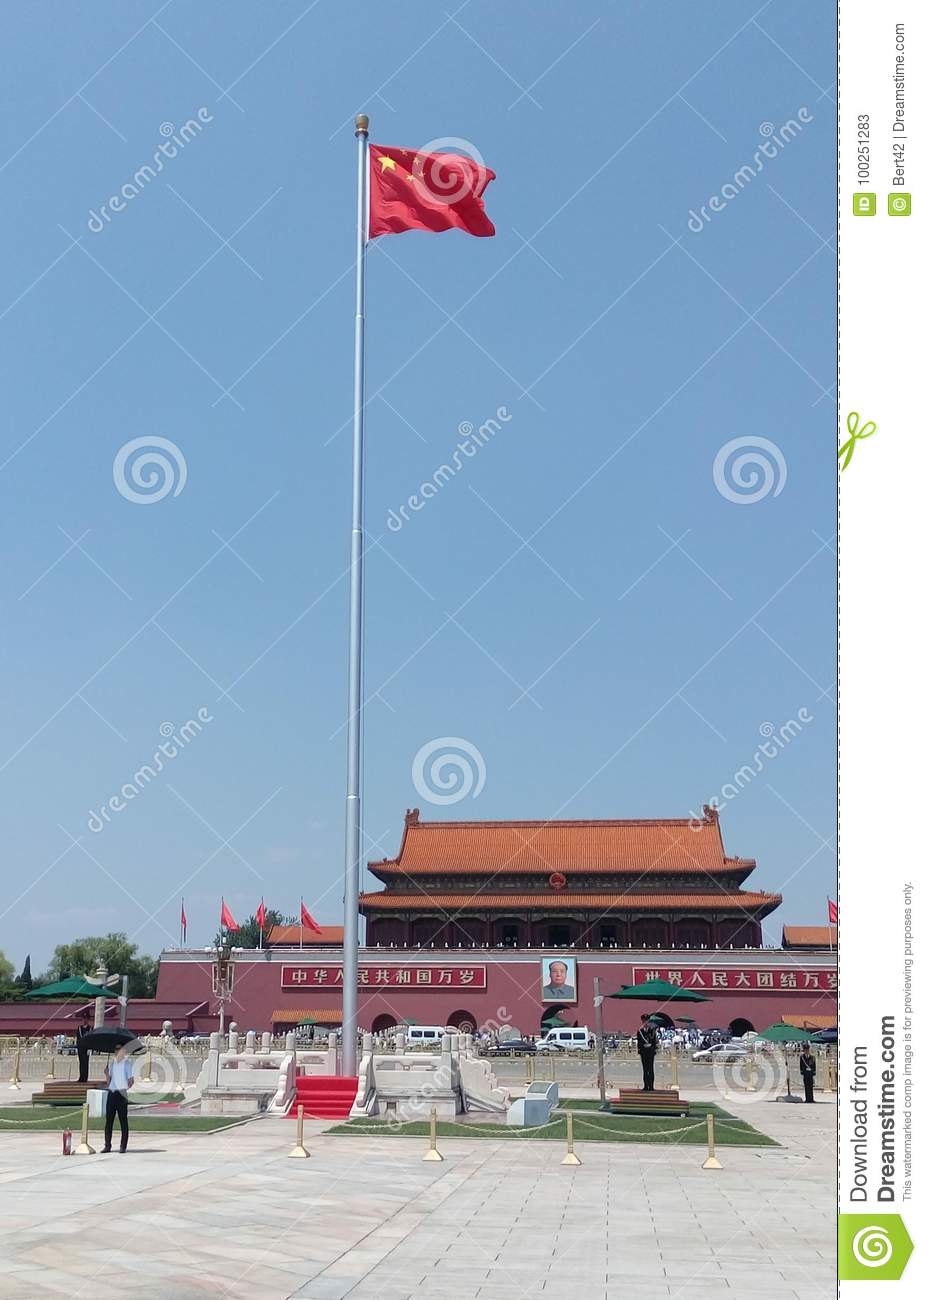 Guards around the Chinese flag at the Tiananmen square